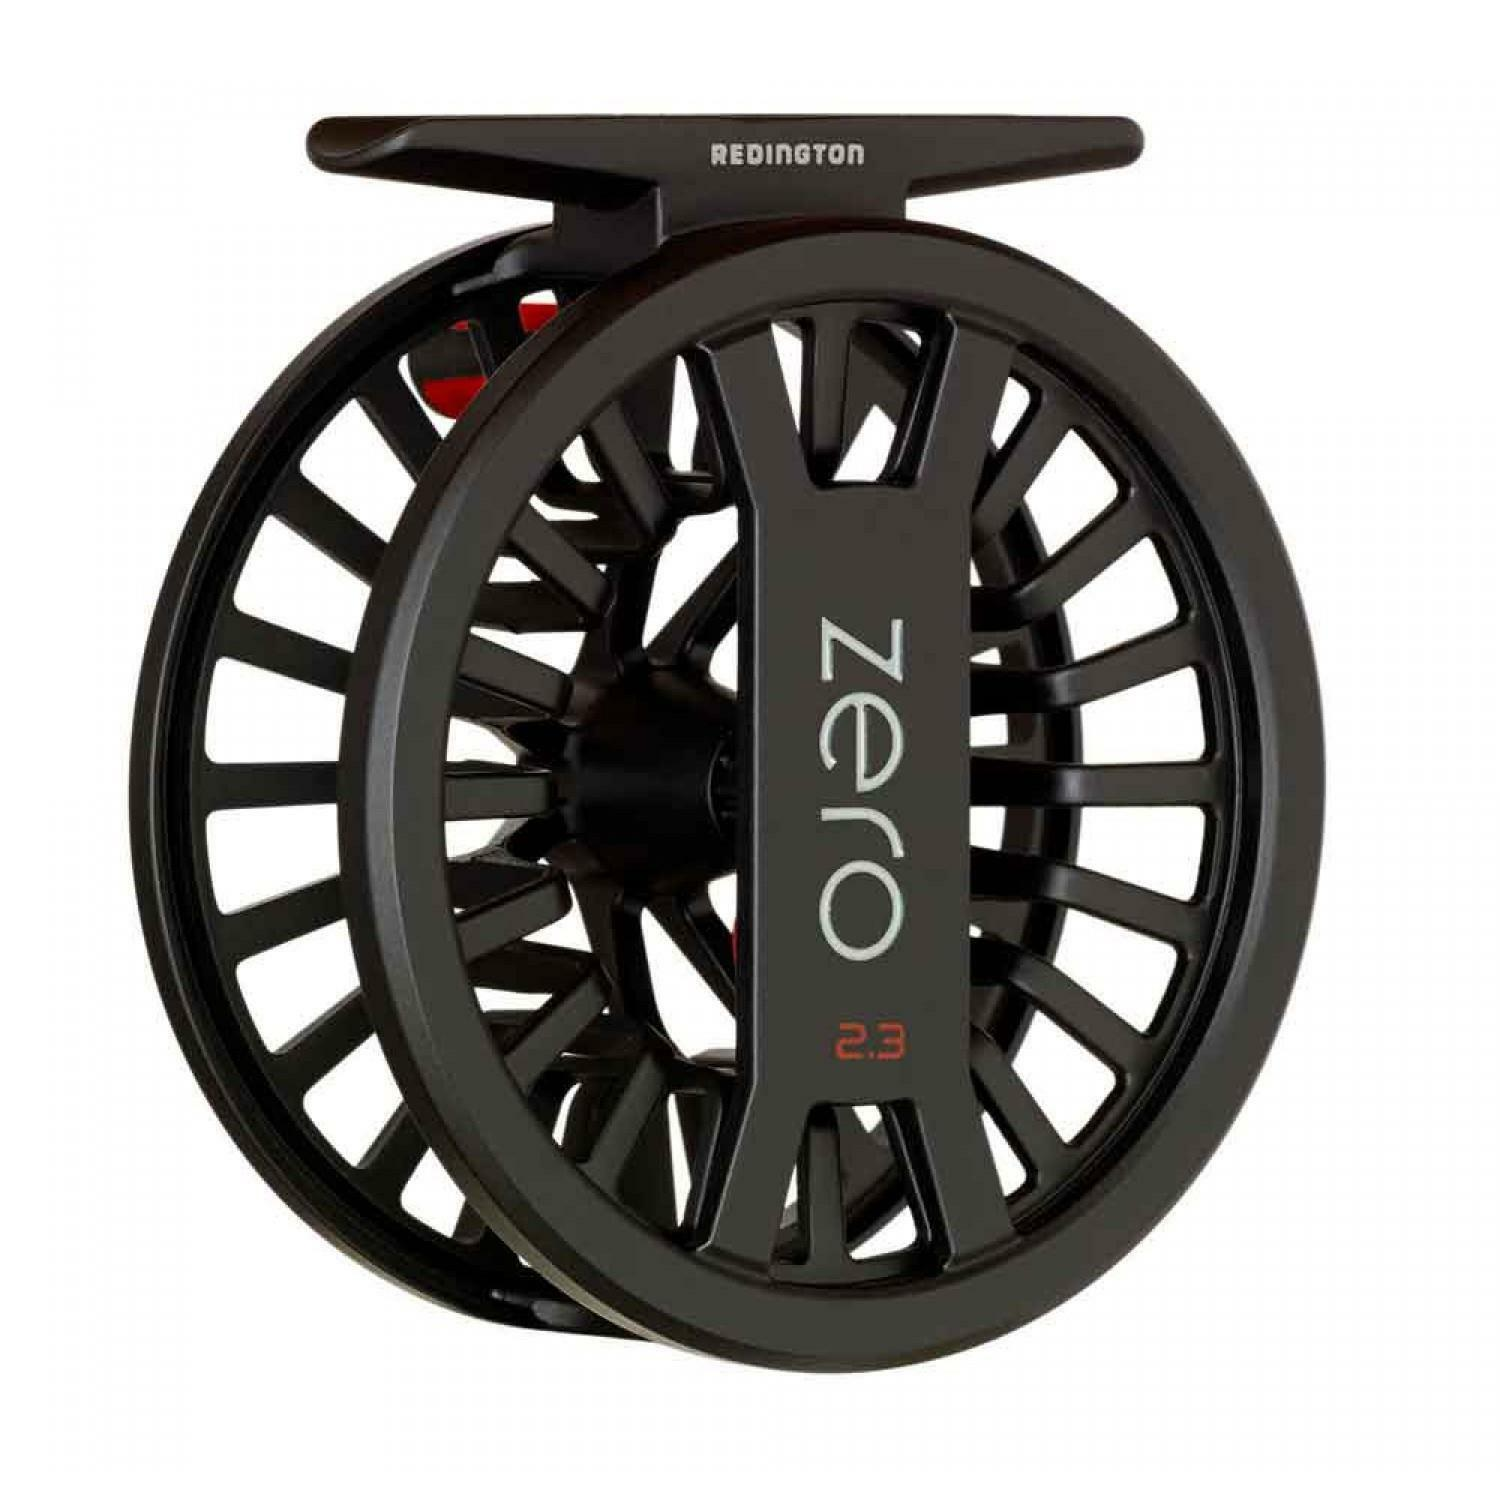 Redington Zero Fly Reels and  Spools - free shipping and no tax  stadium giveaways